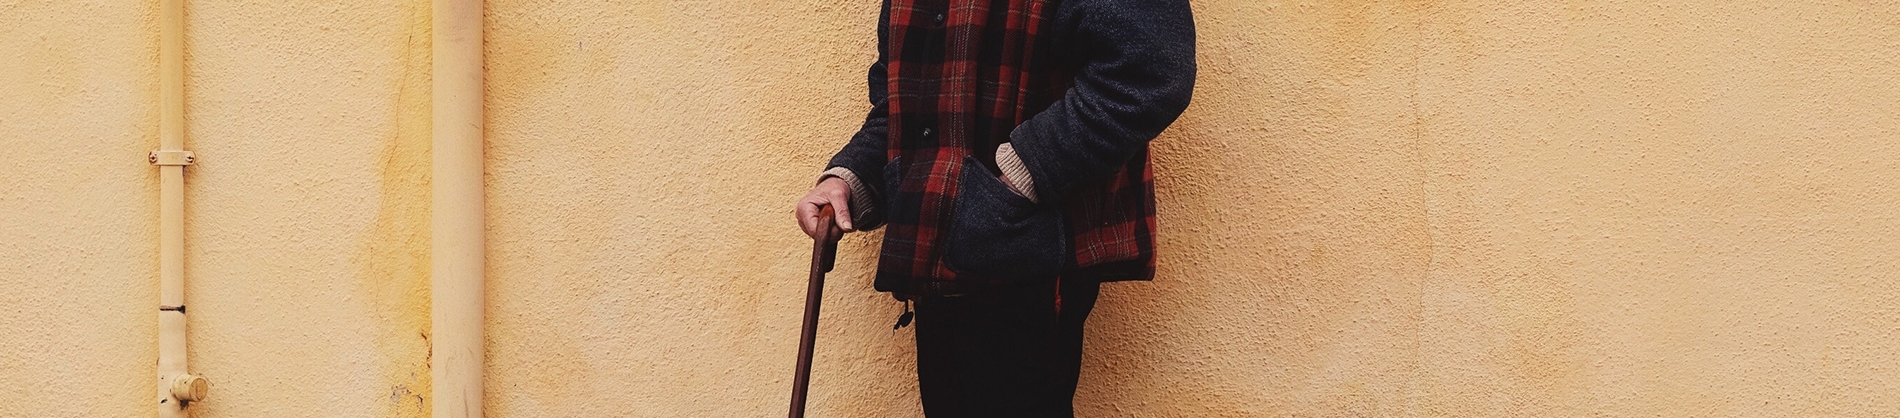 A man stood against a yellow wall with a walking stick